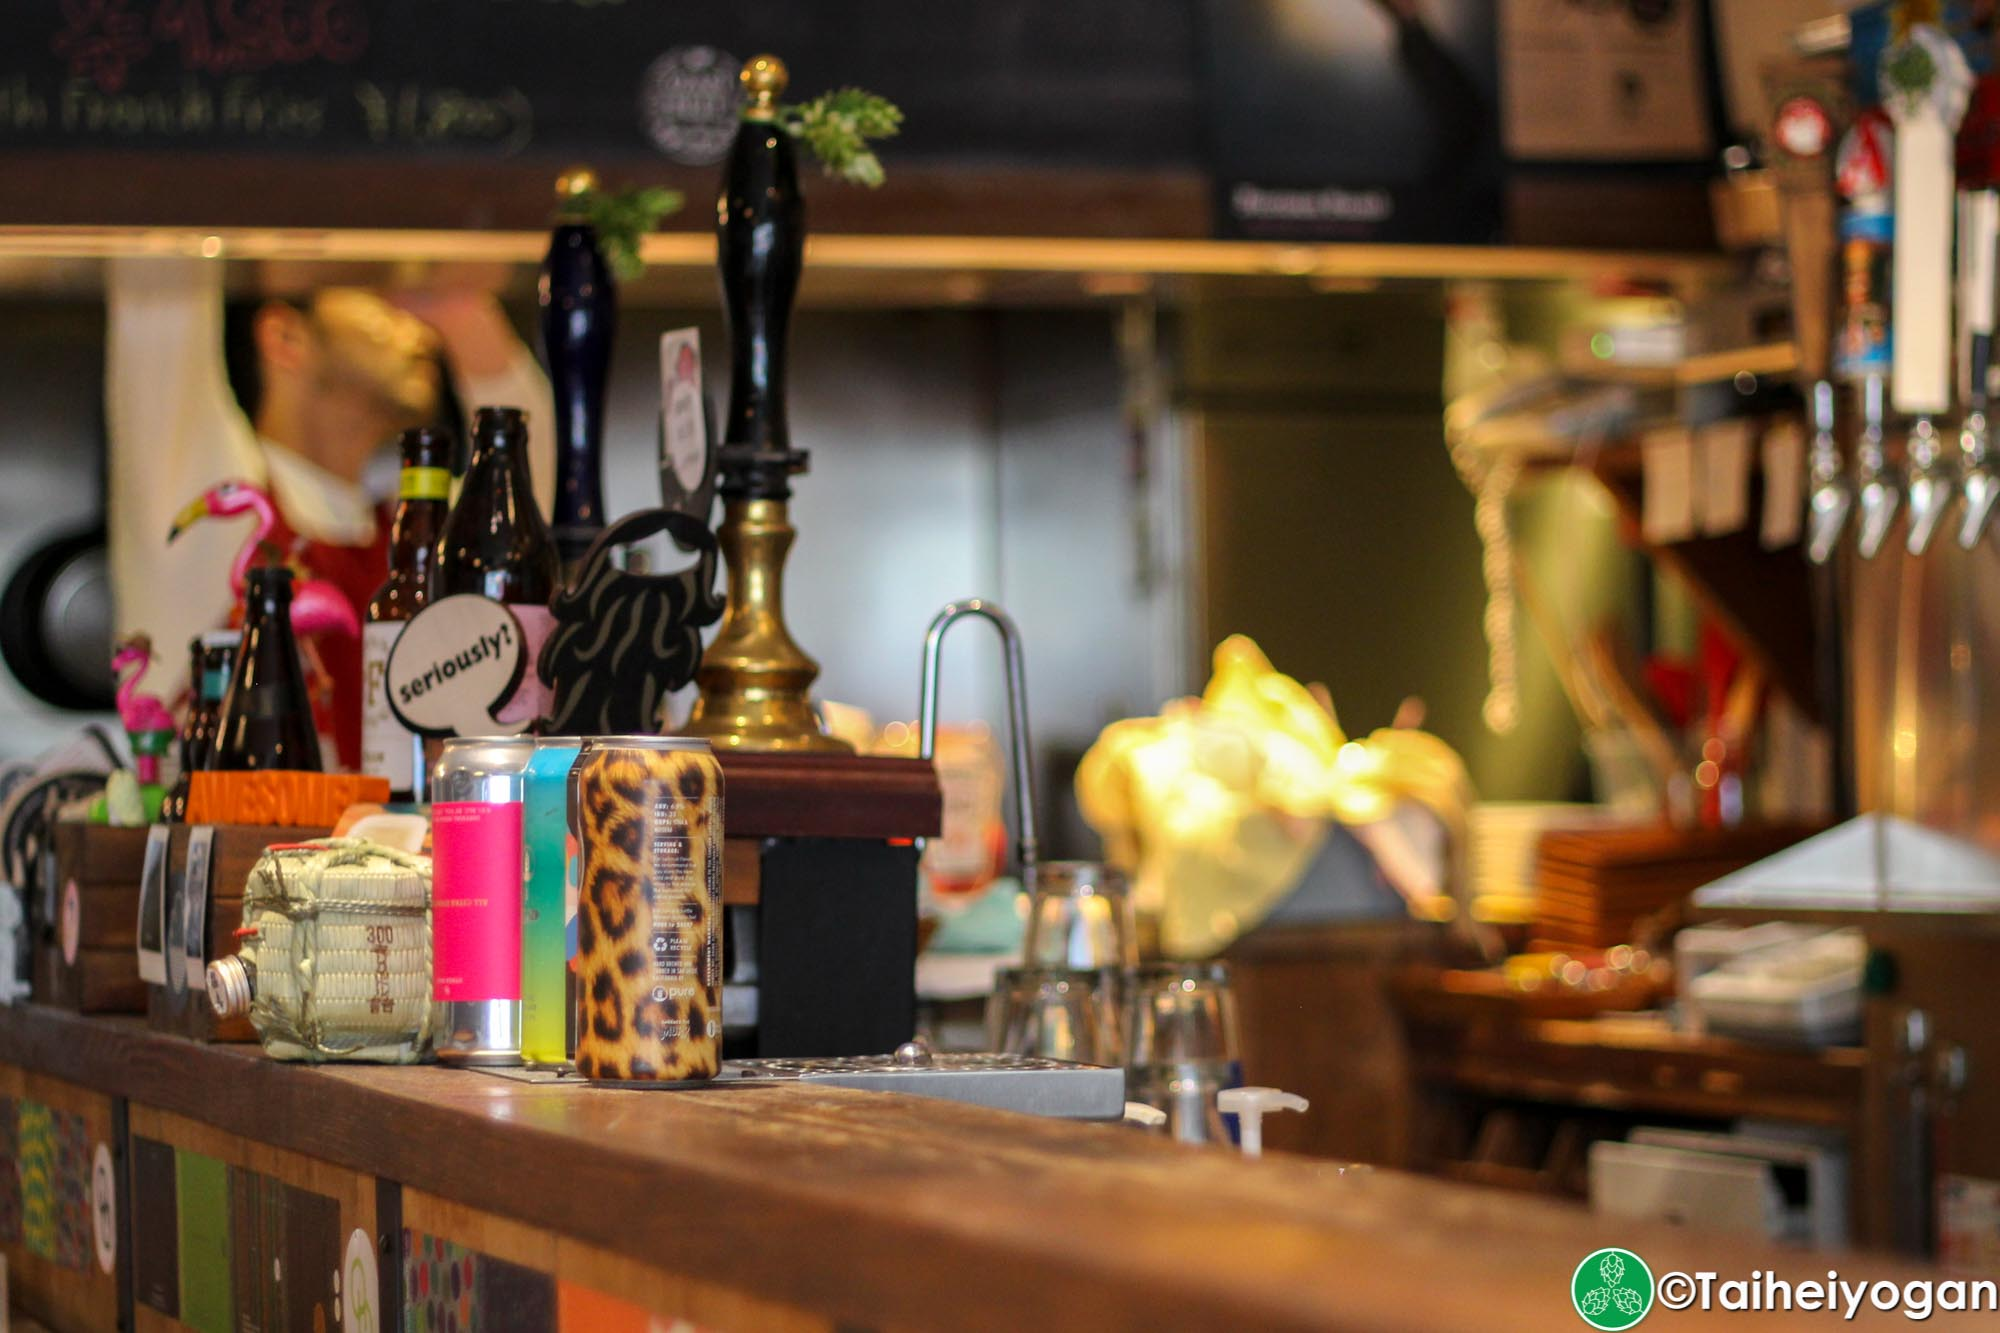 Watering Hole - Interior - Hand Pumps